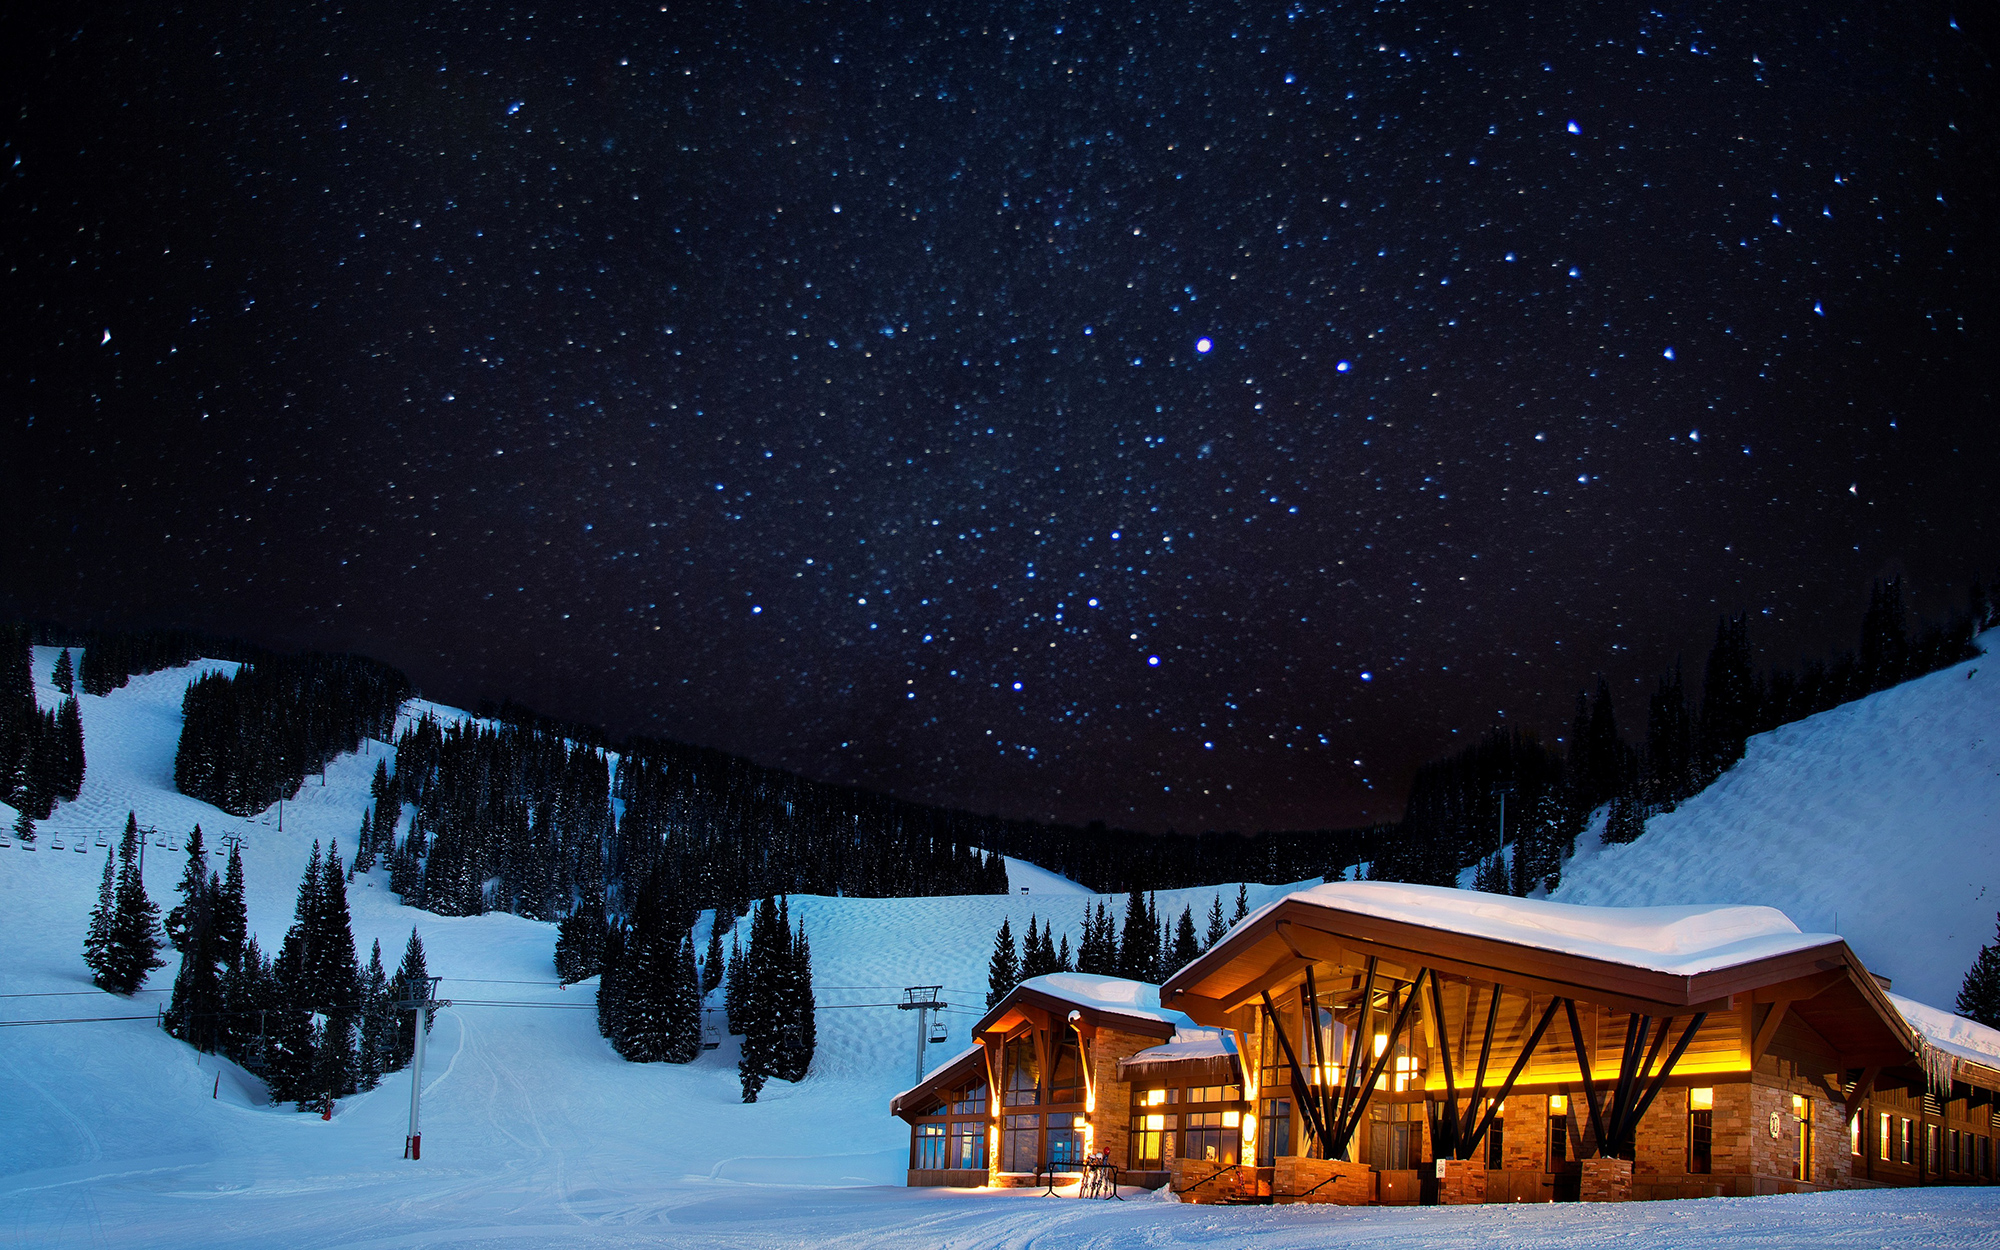 Best Holiday Restaurants in the U.S.: Game Creek Restaurant, Vail, CO